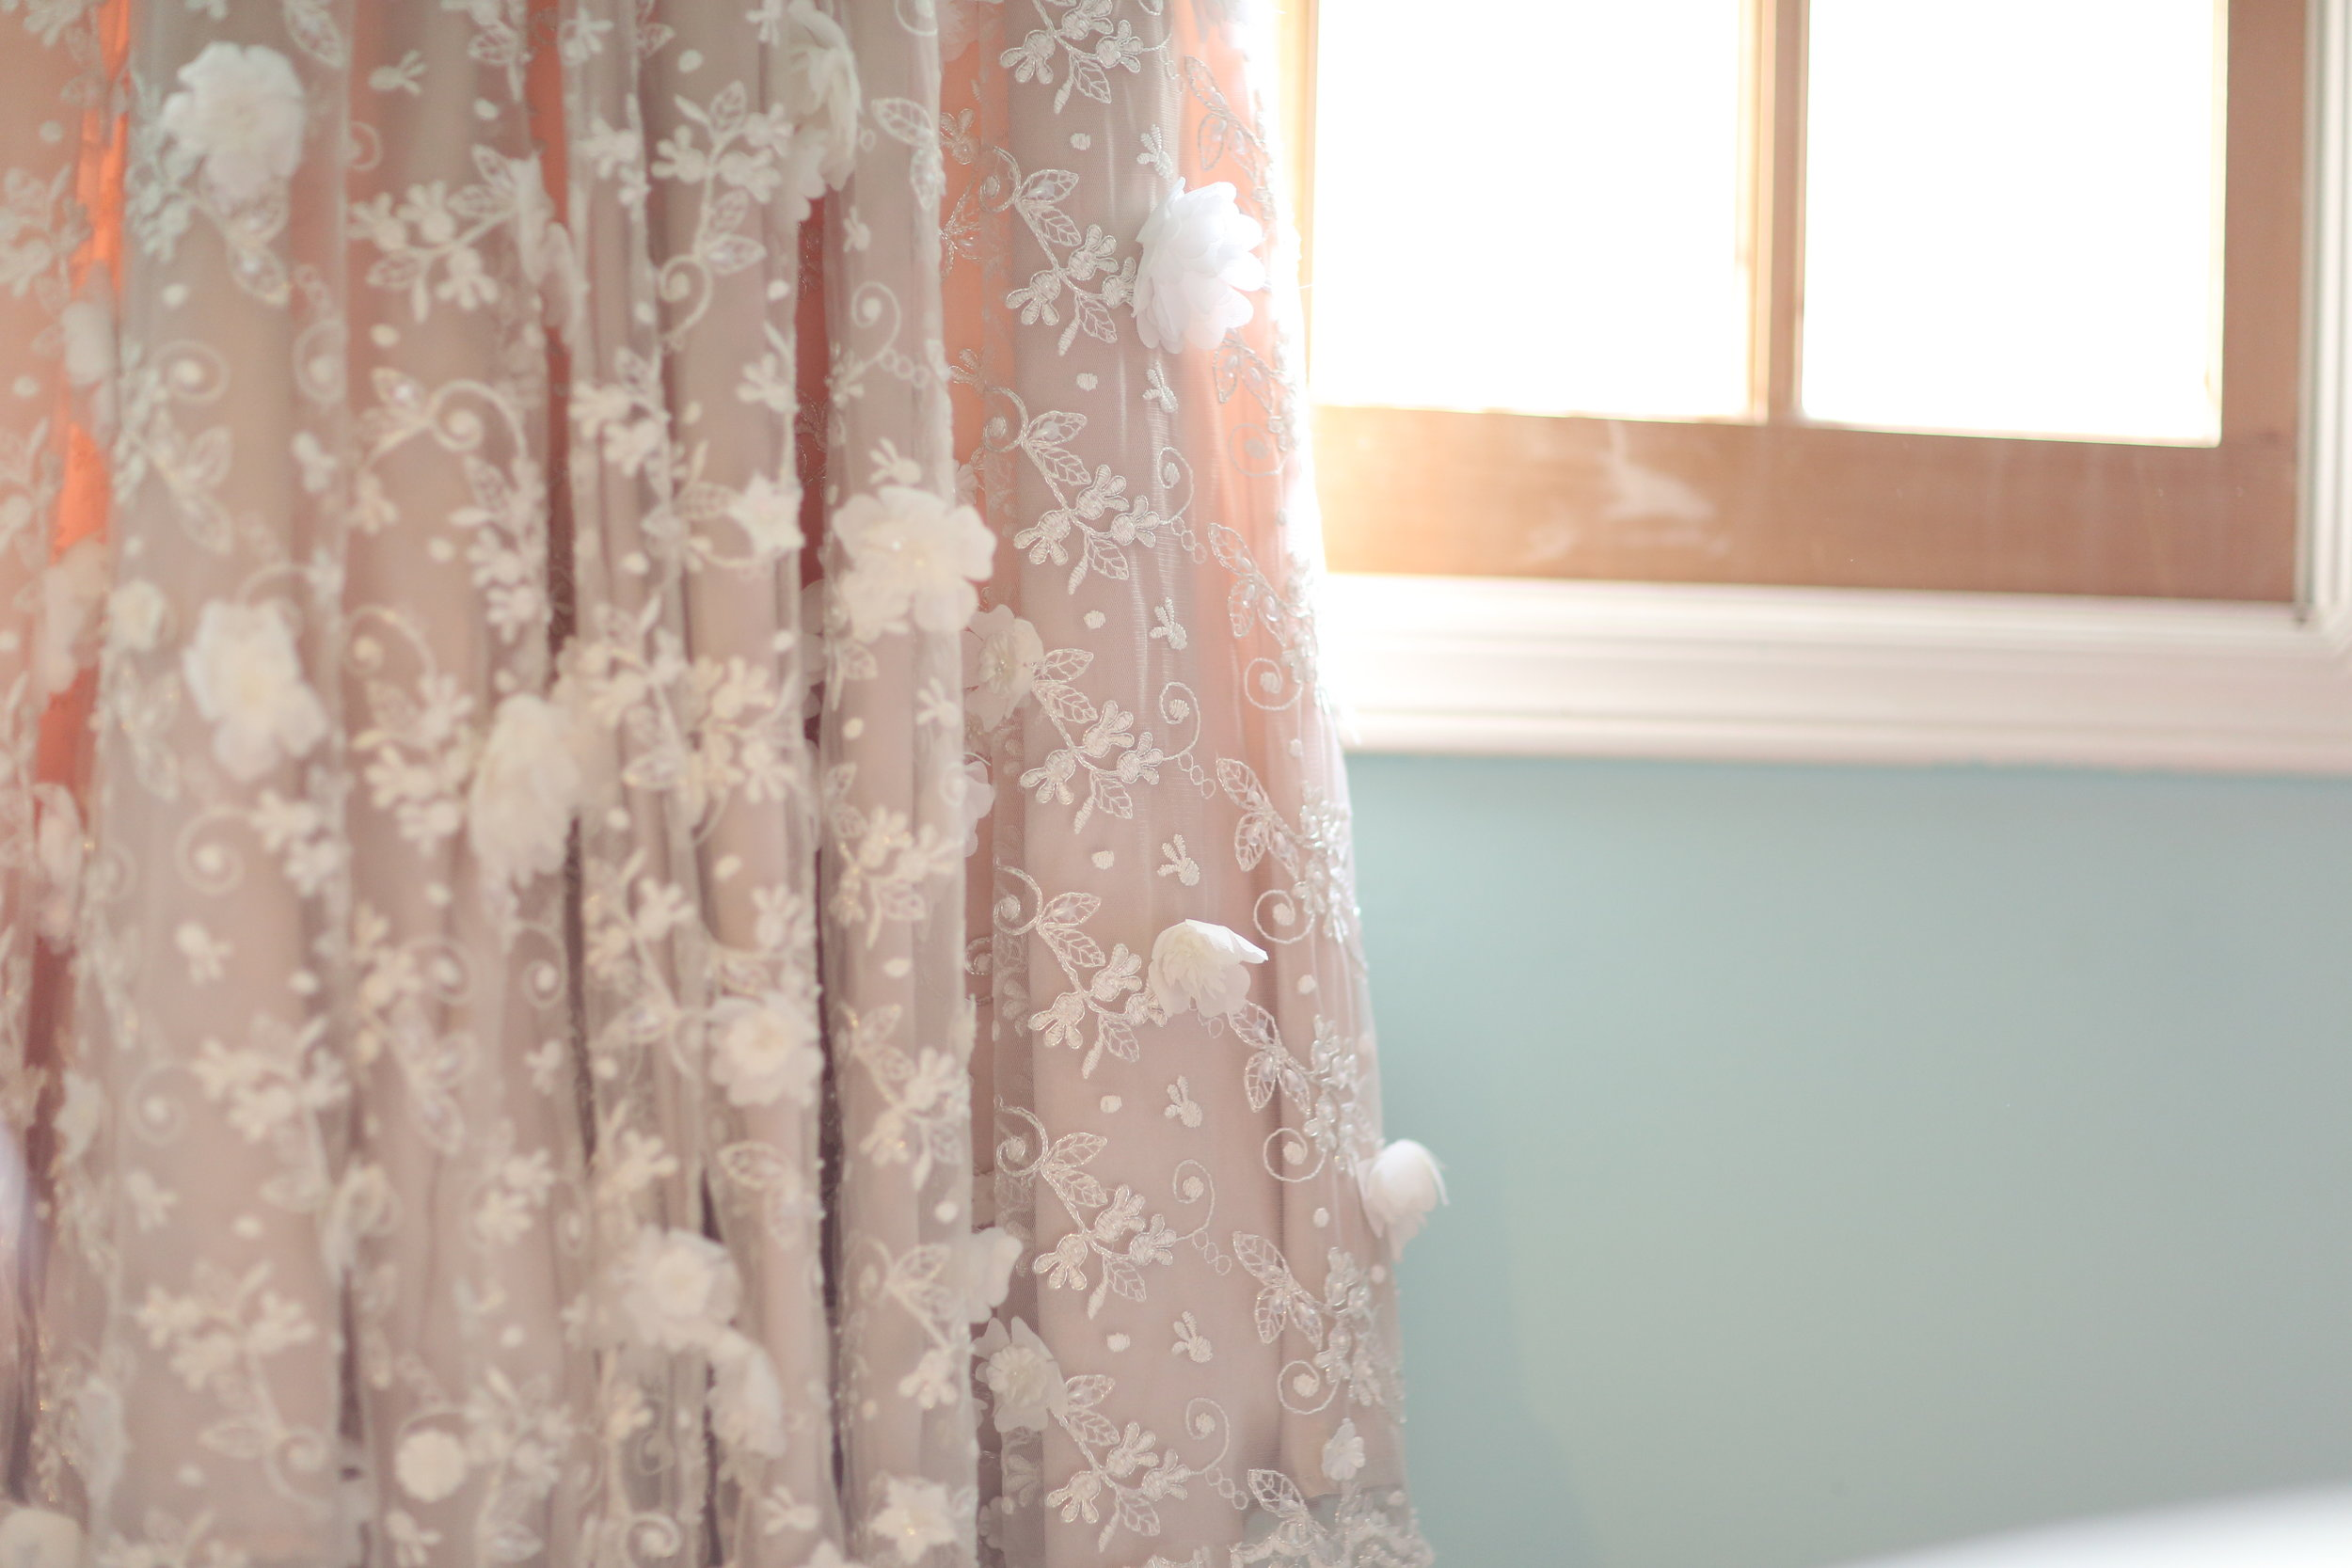 Custom made wedding dress with three dimensional flowers sewn on by hand on the lace. A Sew Kelly creation.